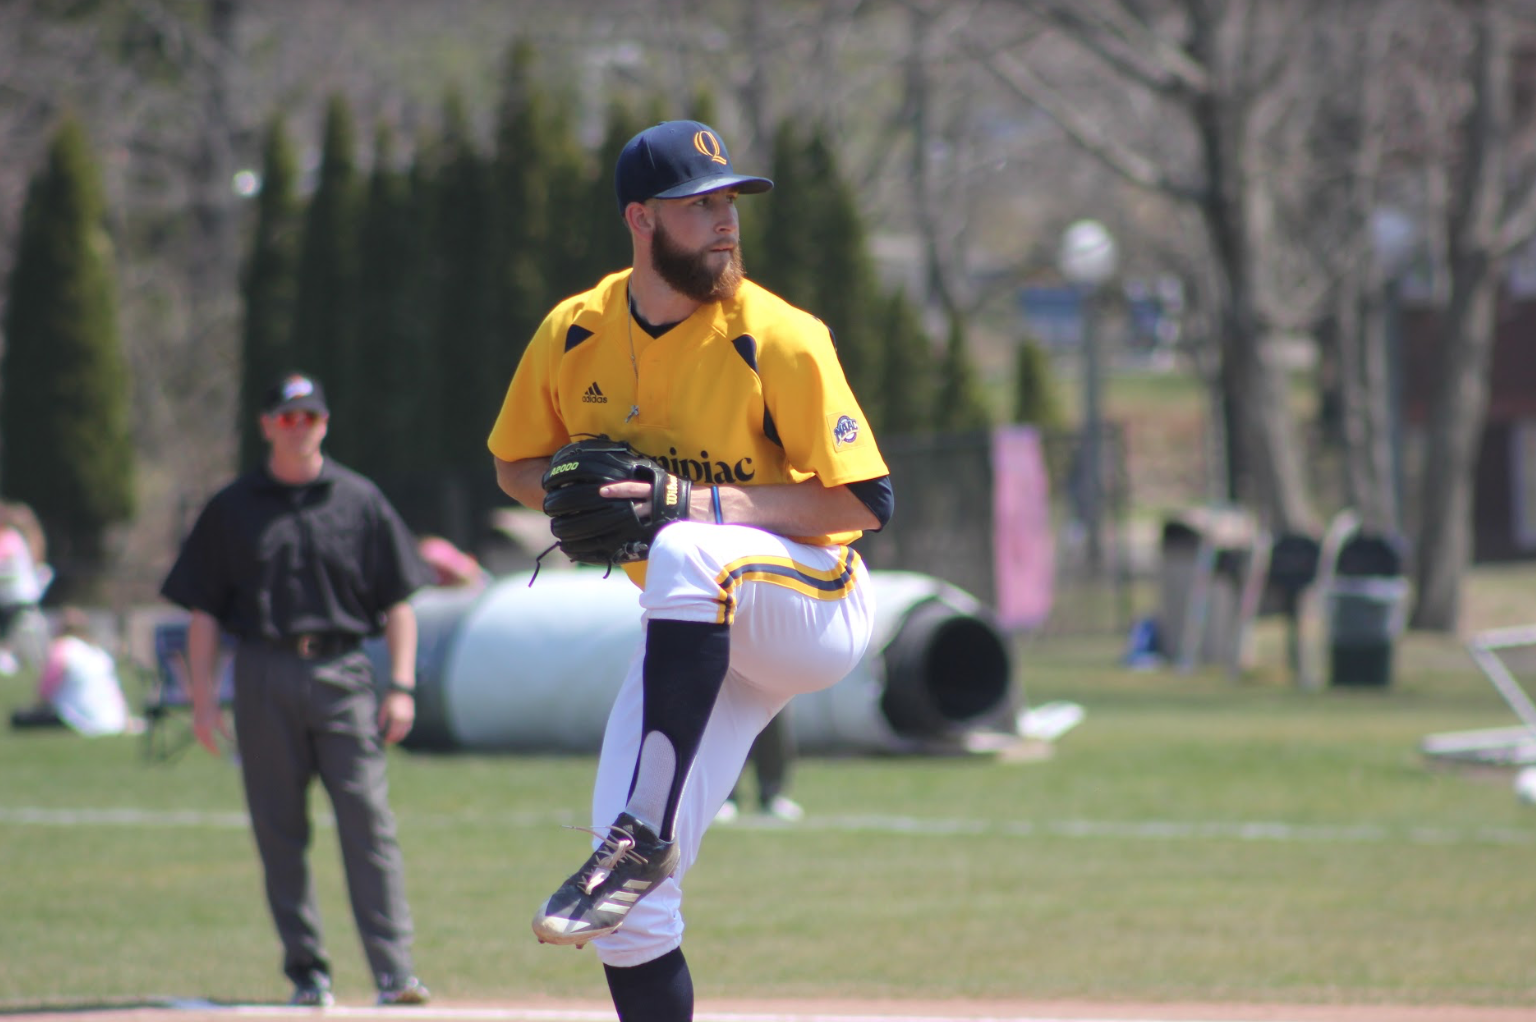 Quinnipiac baseball splits doubleheader with Siena for first MAAC loss